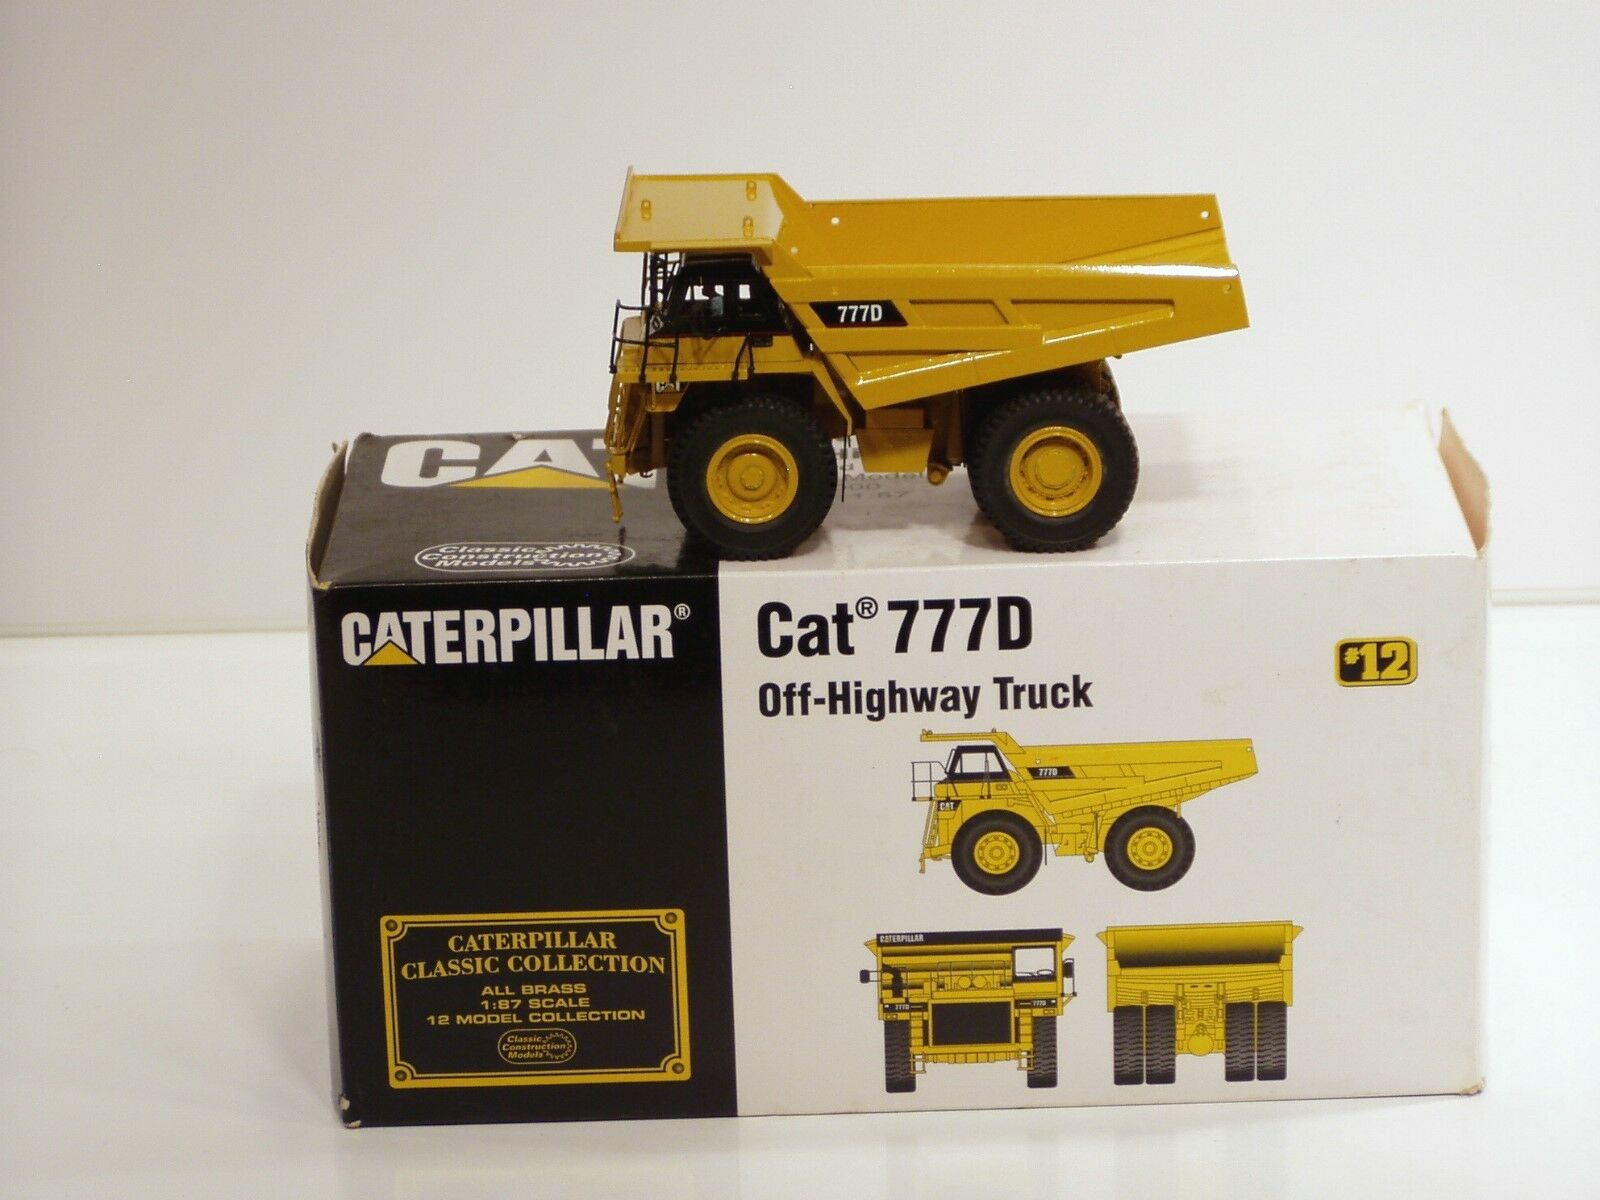 Caterpillar 777D Camion Benne - 1 87 - Laiton-CCM-N. Comme neuf IN BOX